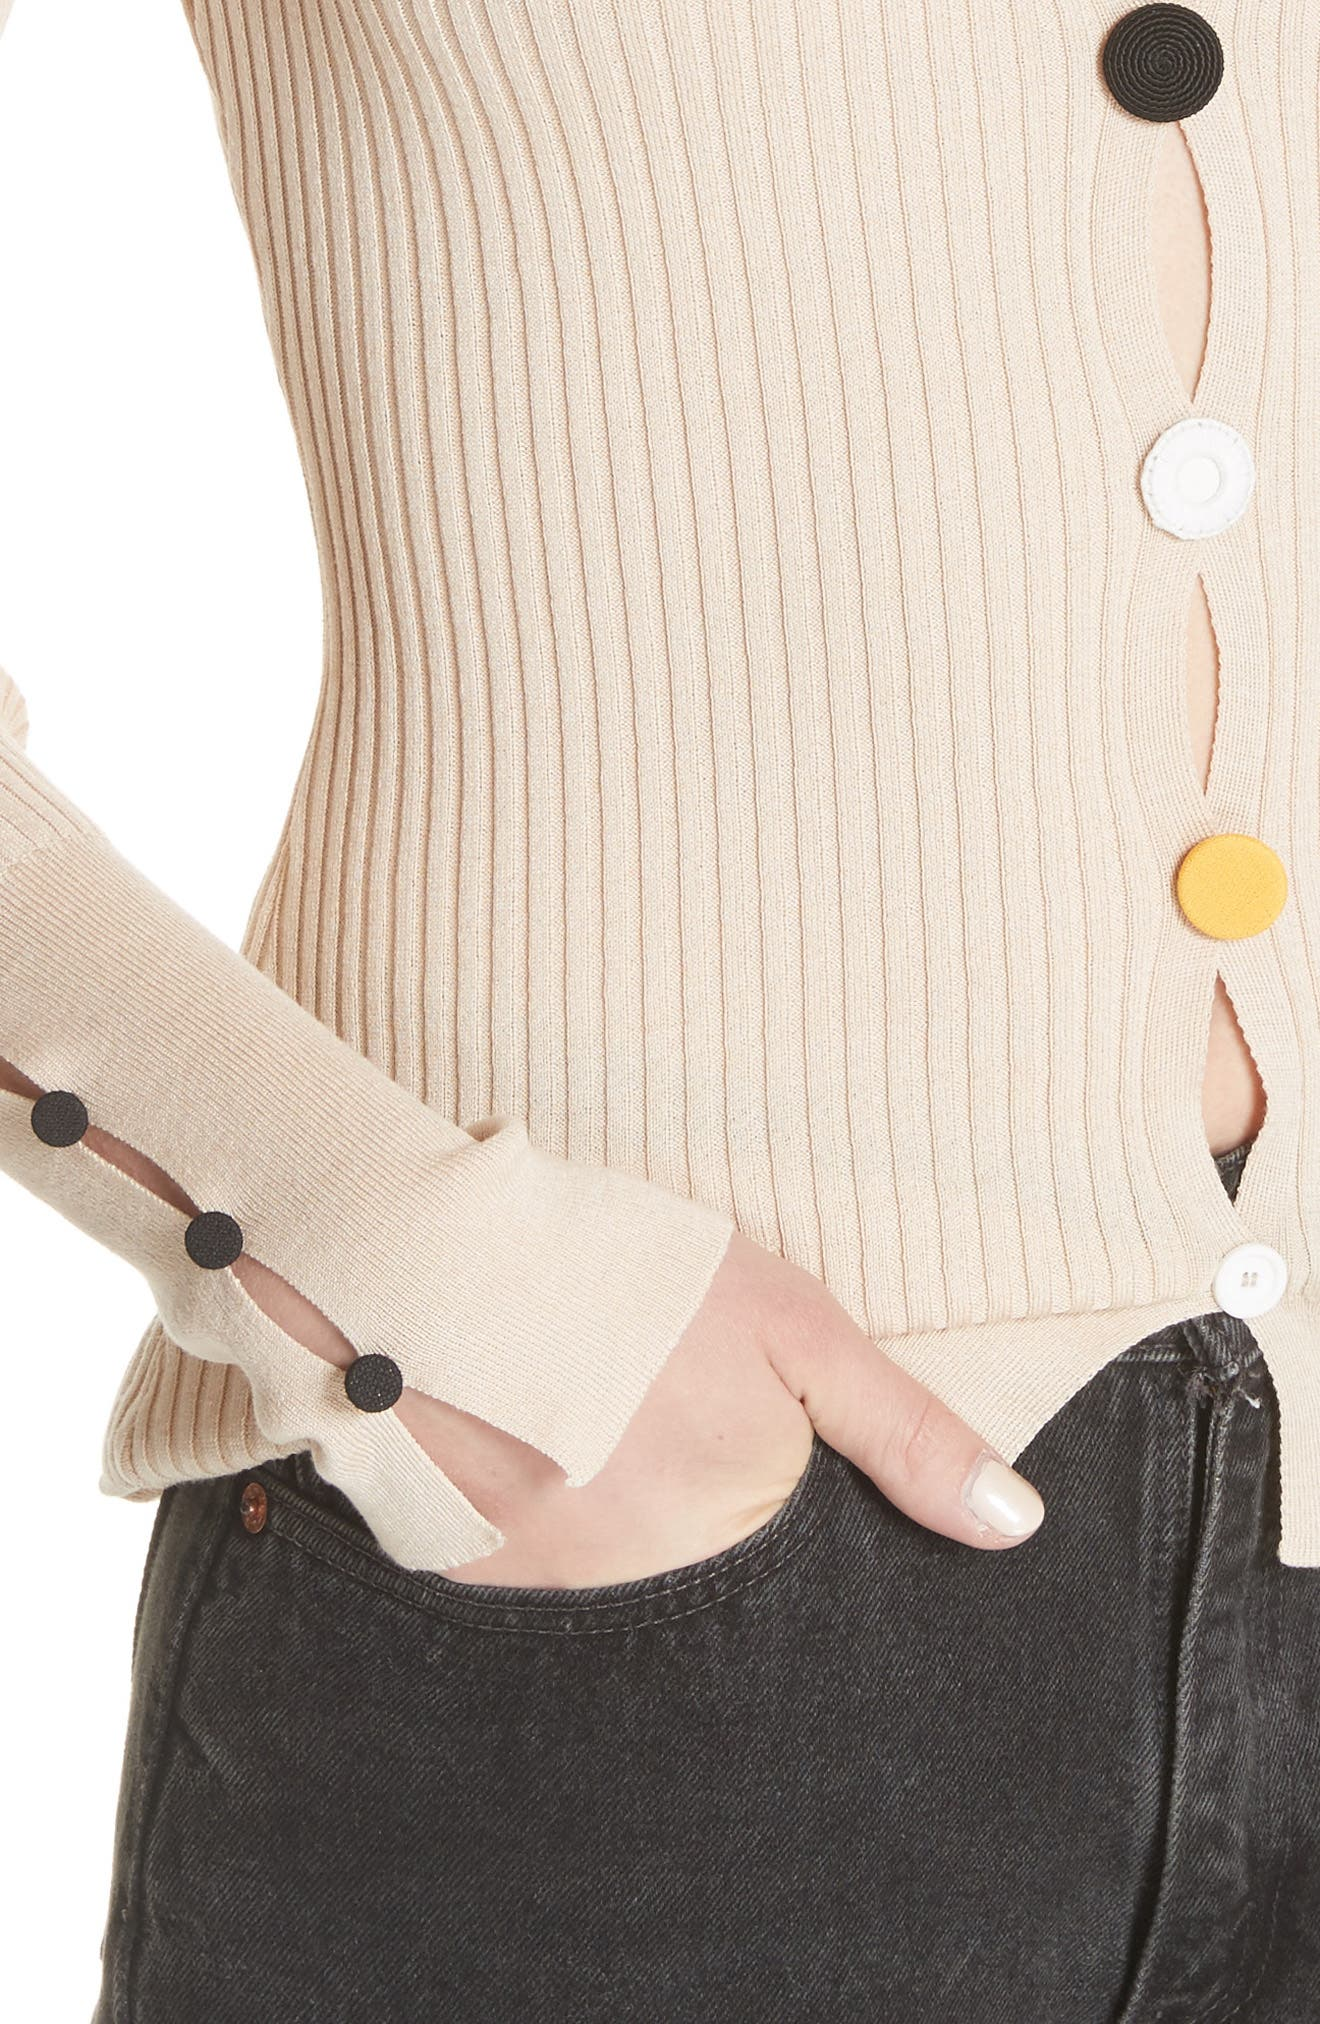 Le Cardigan Ribbed Button Cardigan,                             Alternate thumbnail 4, color,                             Beige